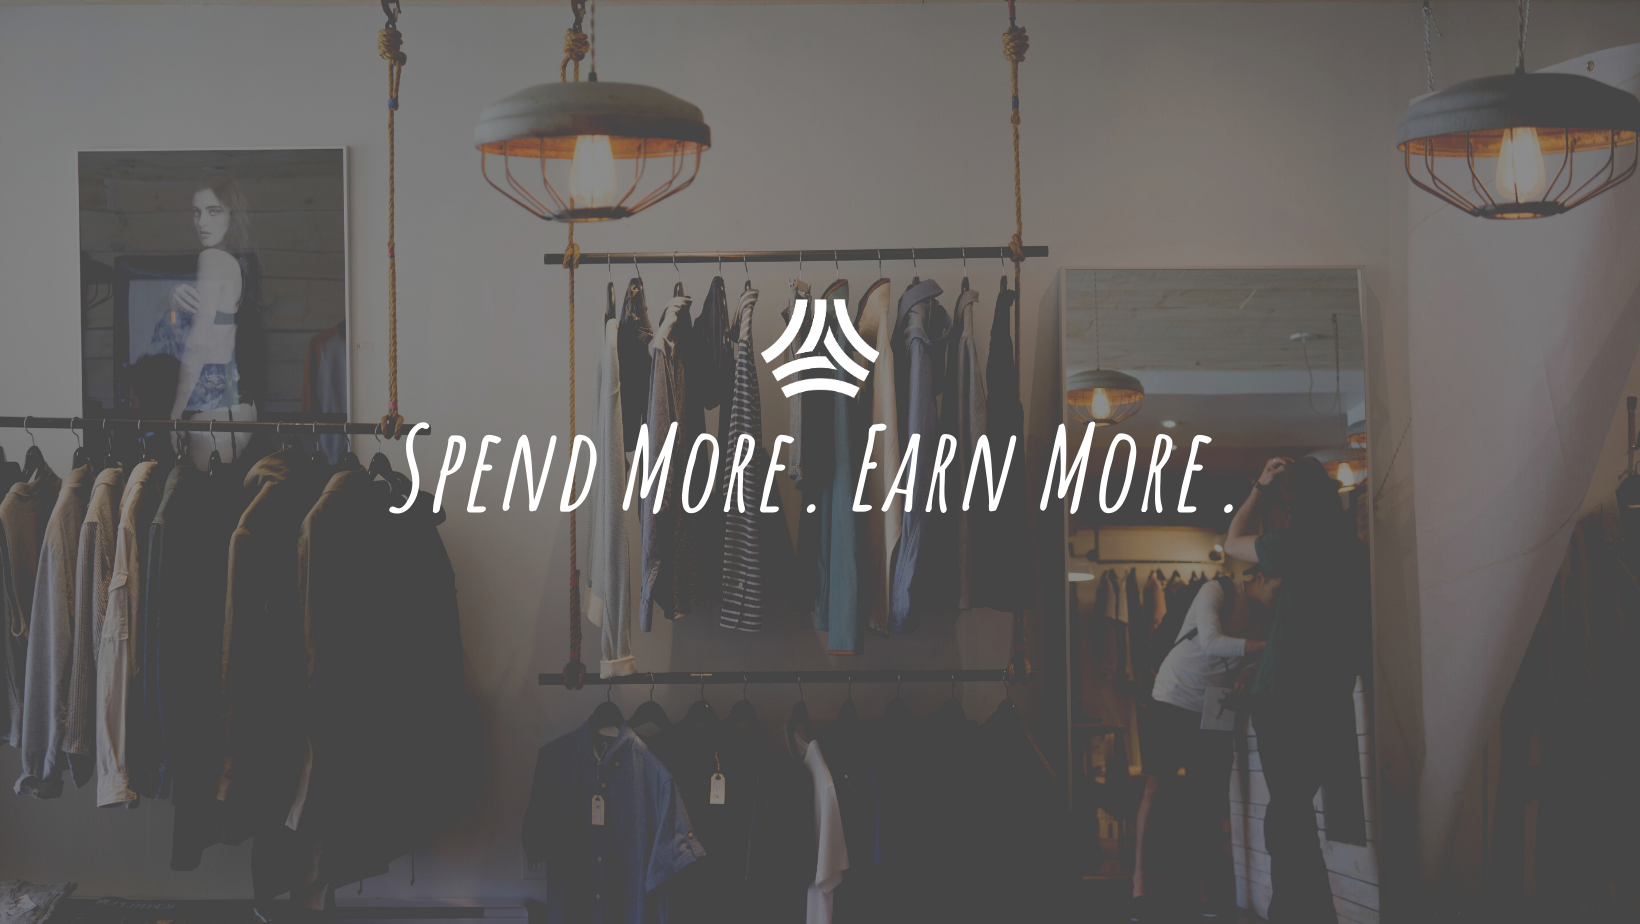 CU Rewards - Spend more. Earn more.